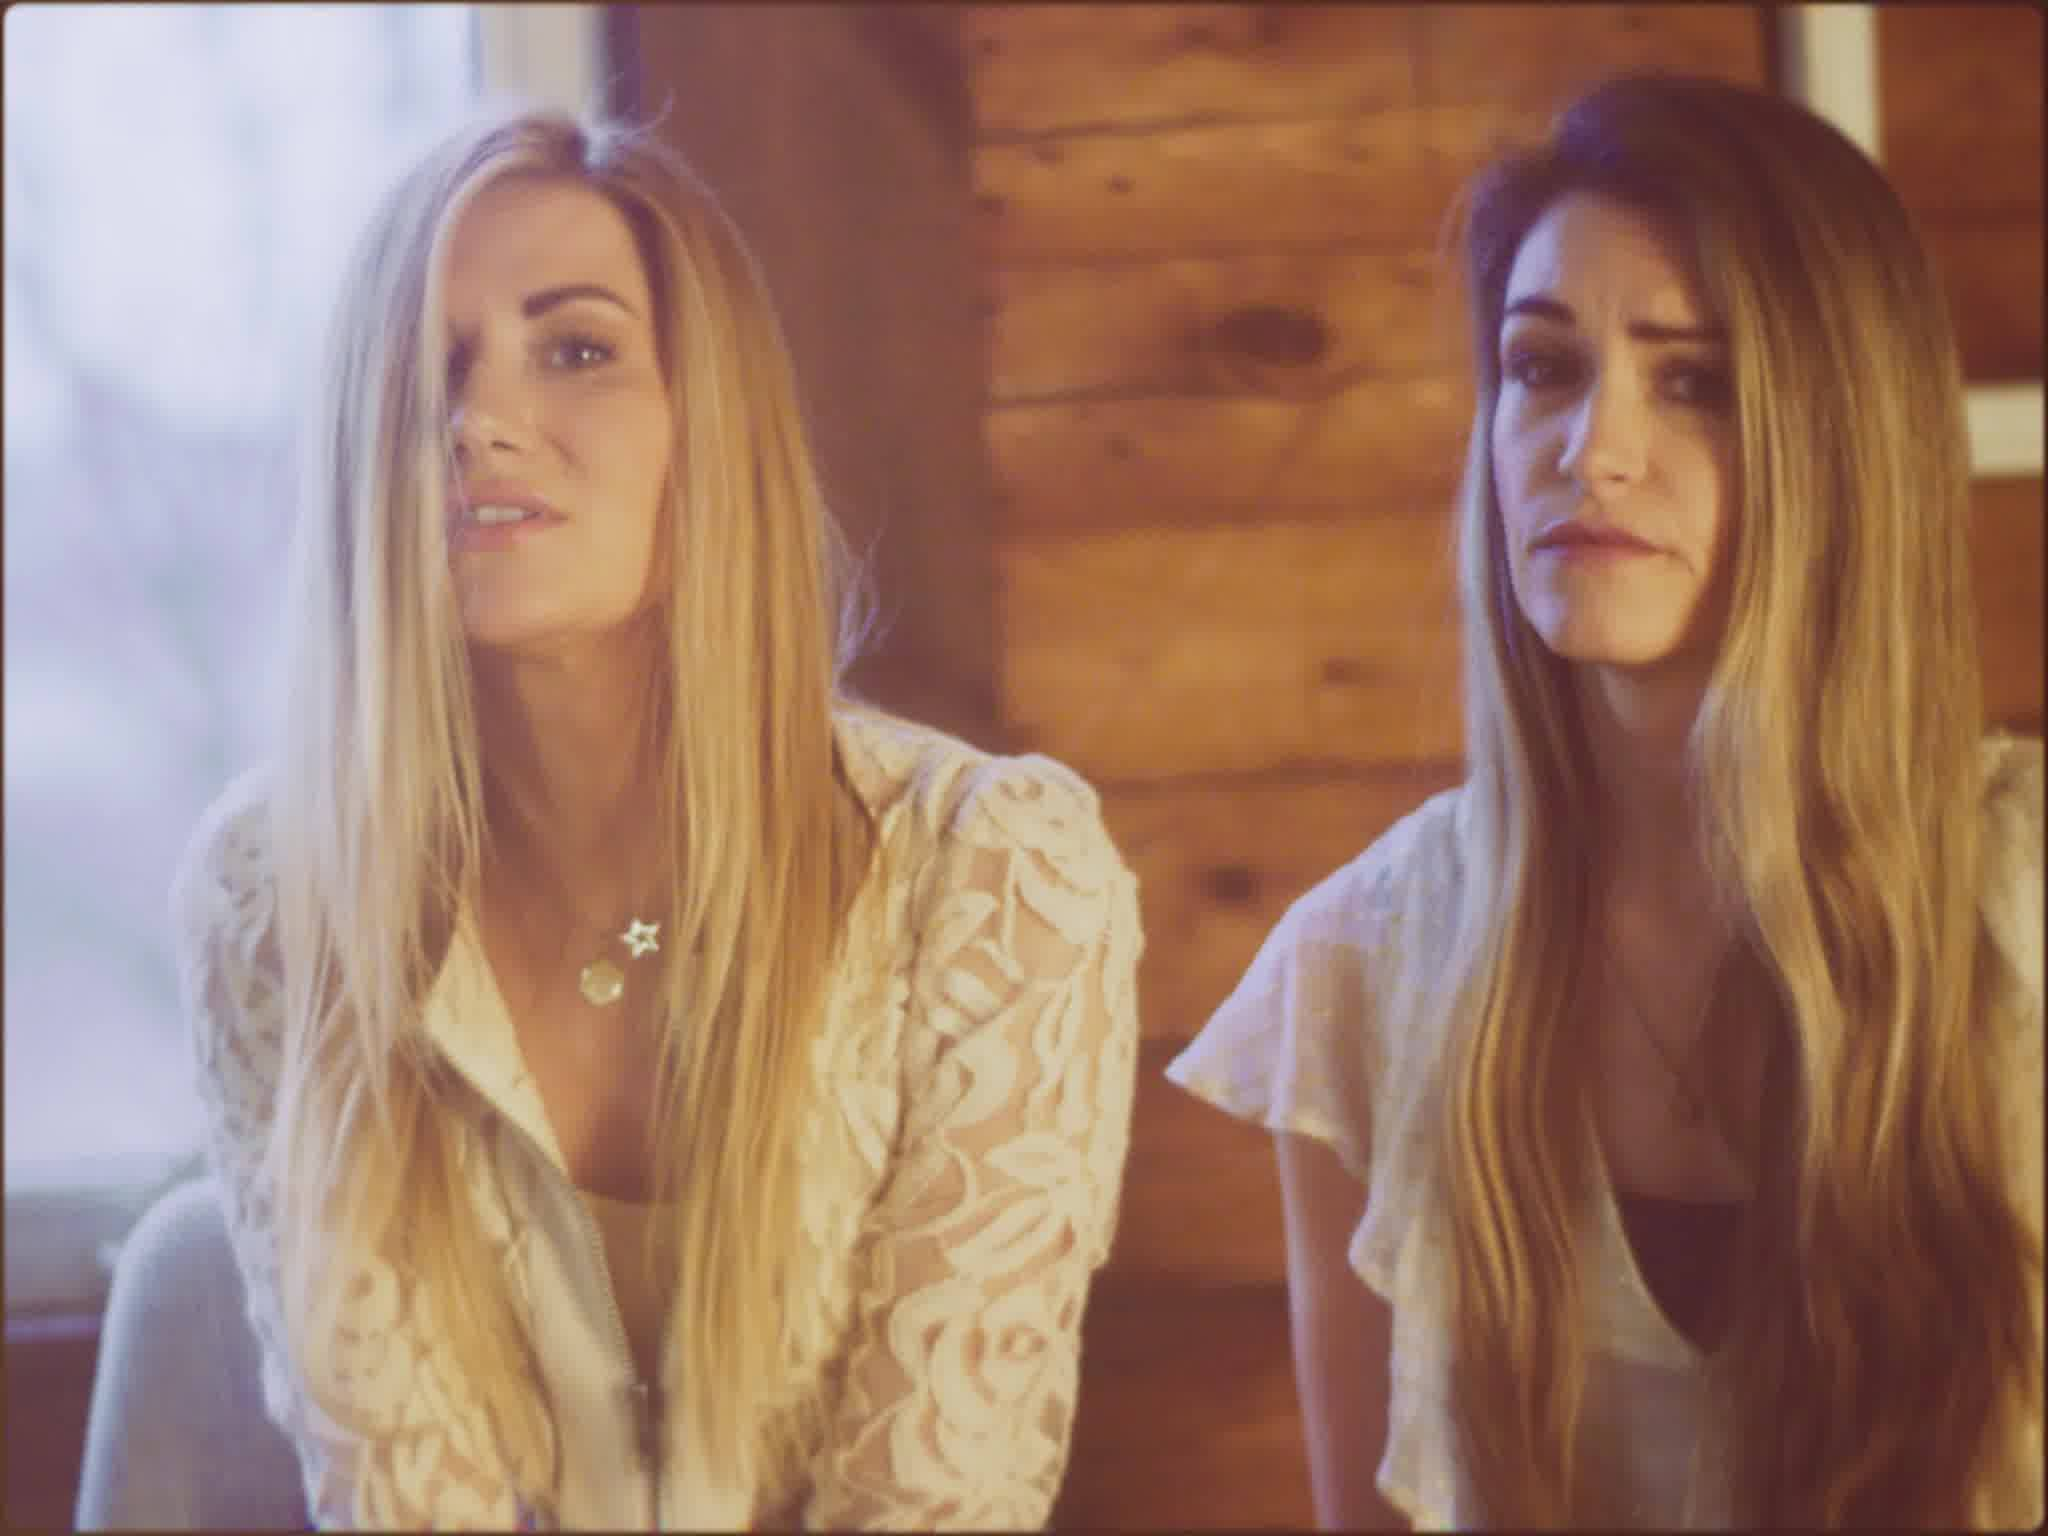 The Cedar Sisters - Young and Beautiful (Lana Del Rey Cover)